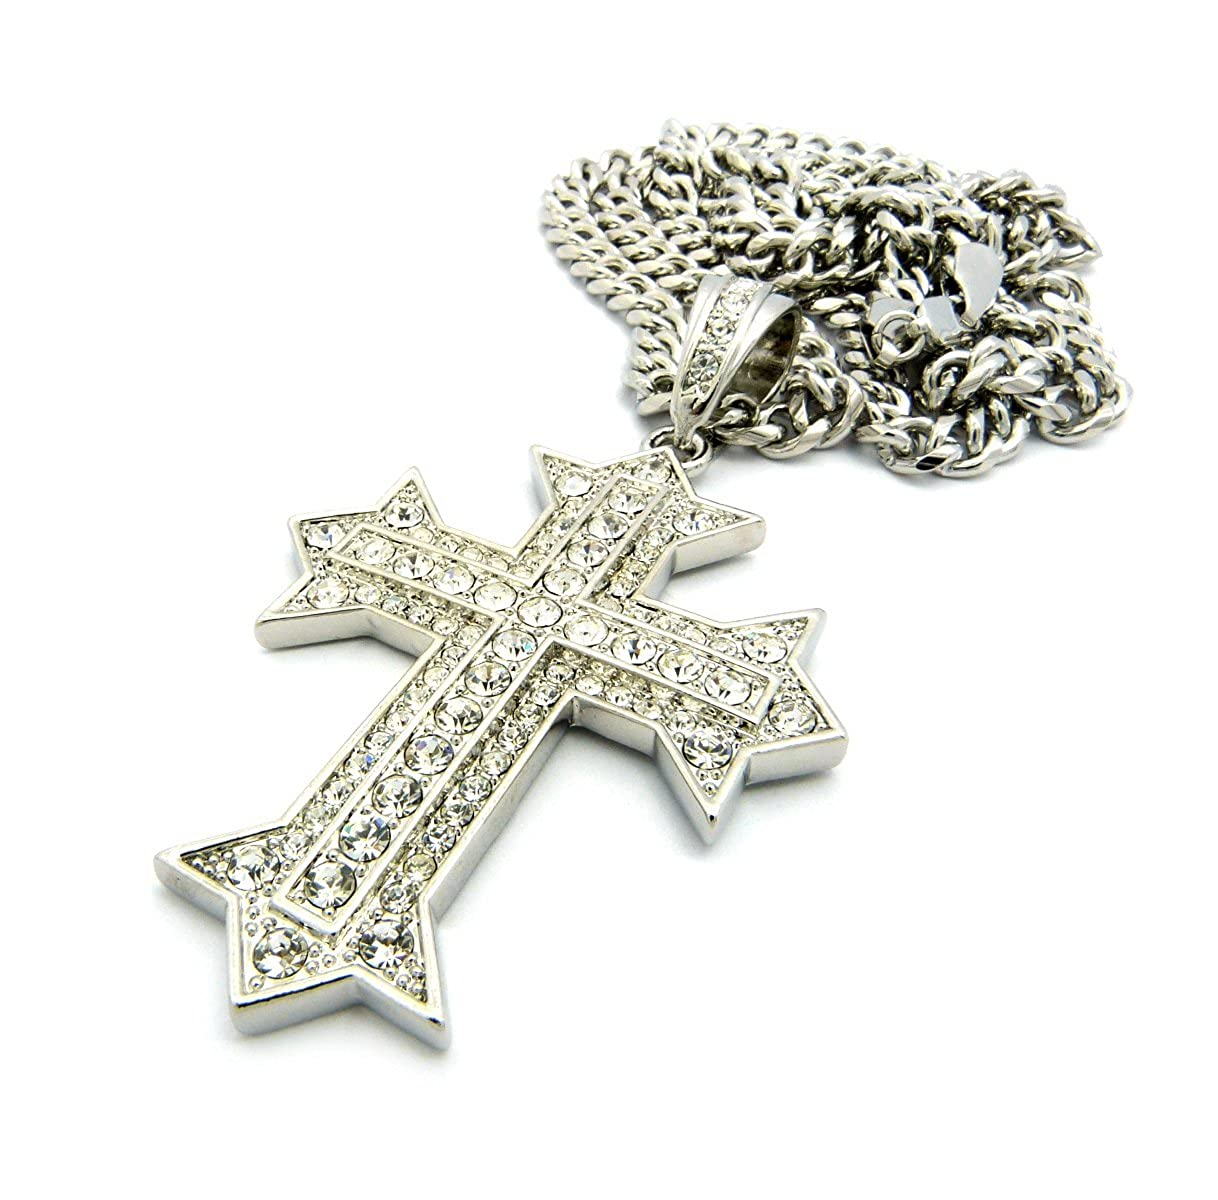 New Iced Out CROSS Pendant /&6mm//36 Cuban Link Chain Hip Hop Necklace CP136R